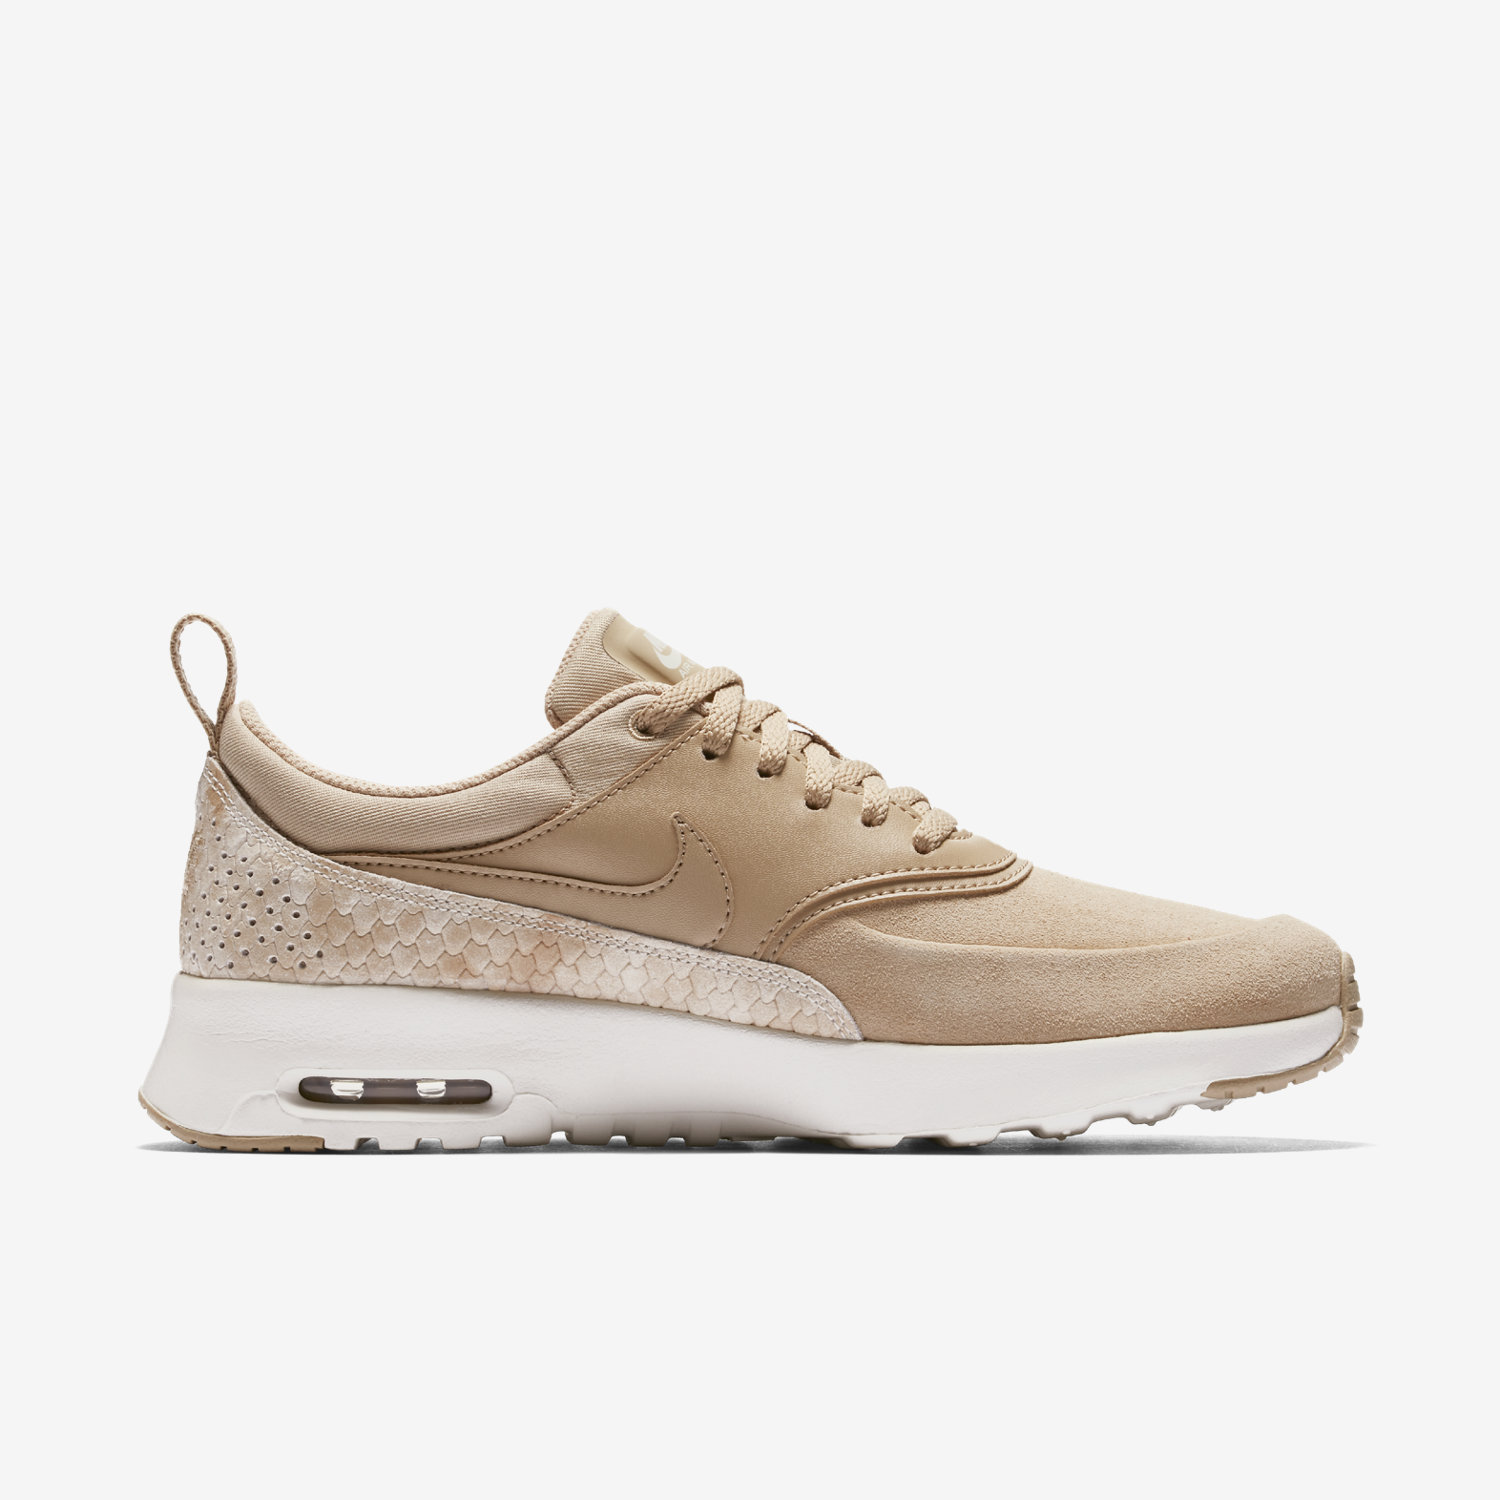 Nike Air Max Thea Army Green Kellogg Community College